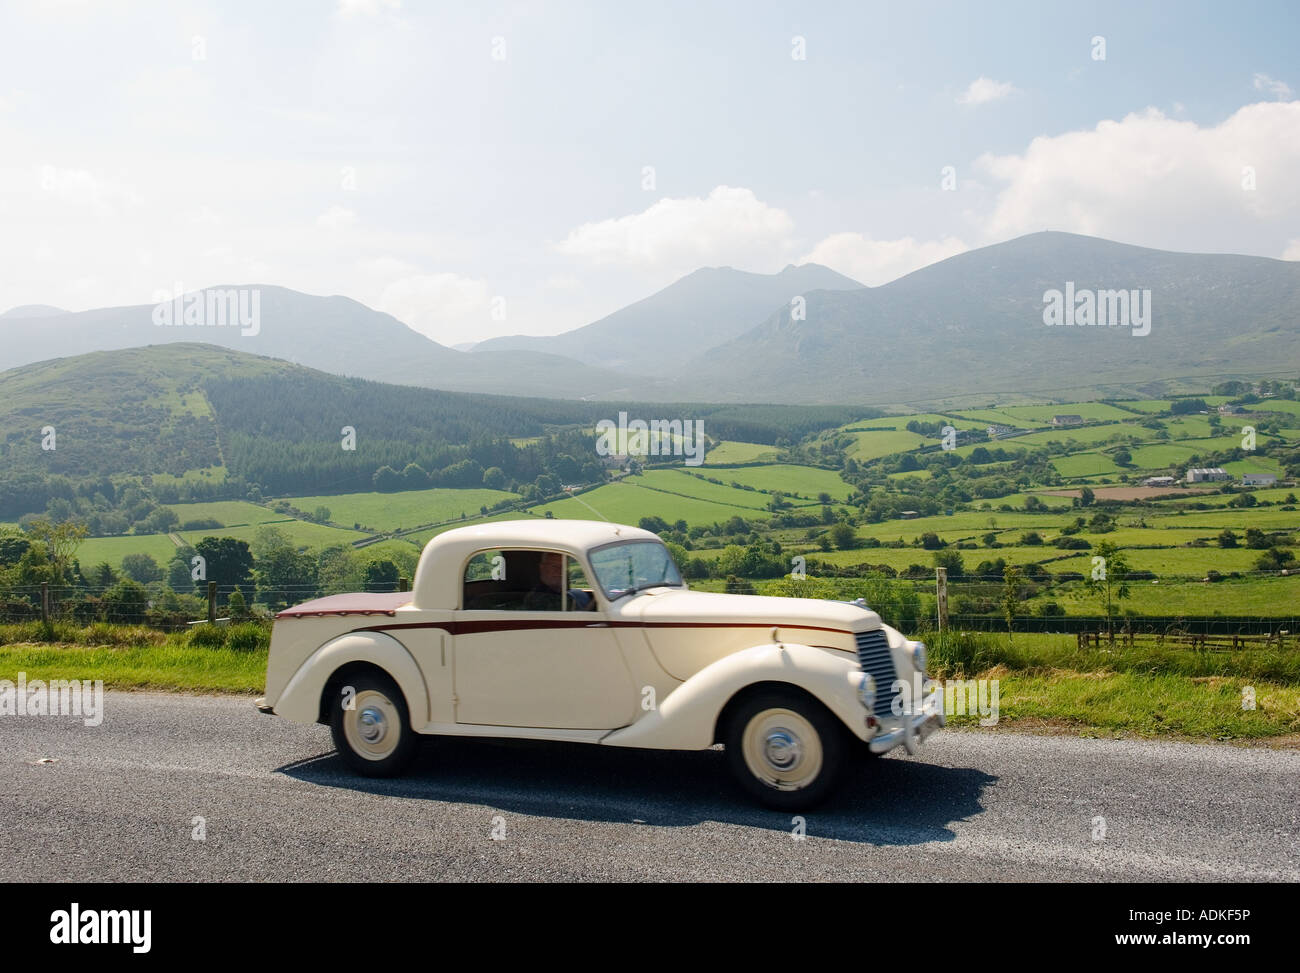 Vintage car tourer on the Trassey Road through the Mourne Mountains, County Down, Ireland with Slieve Bearnagh in - Stock Image